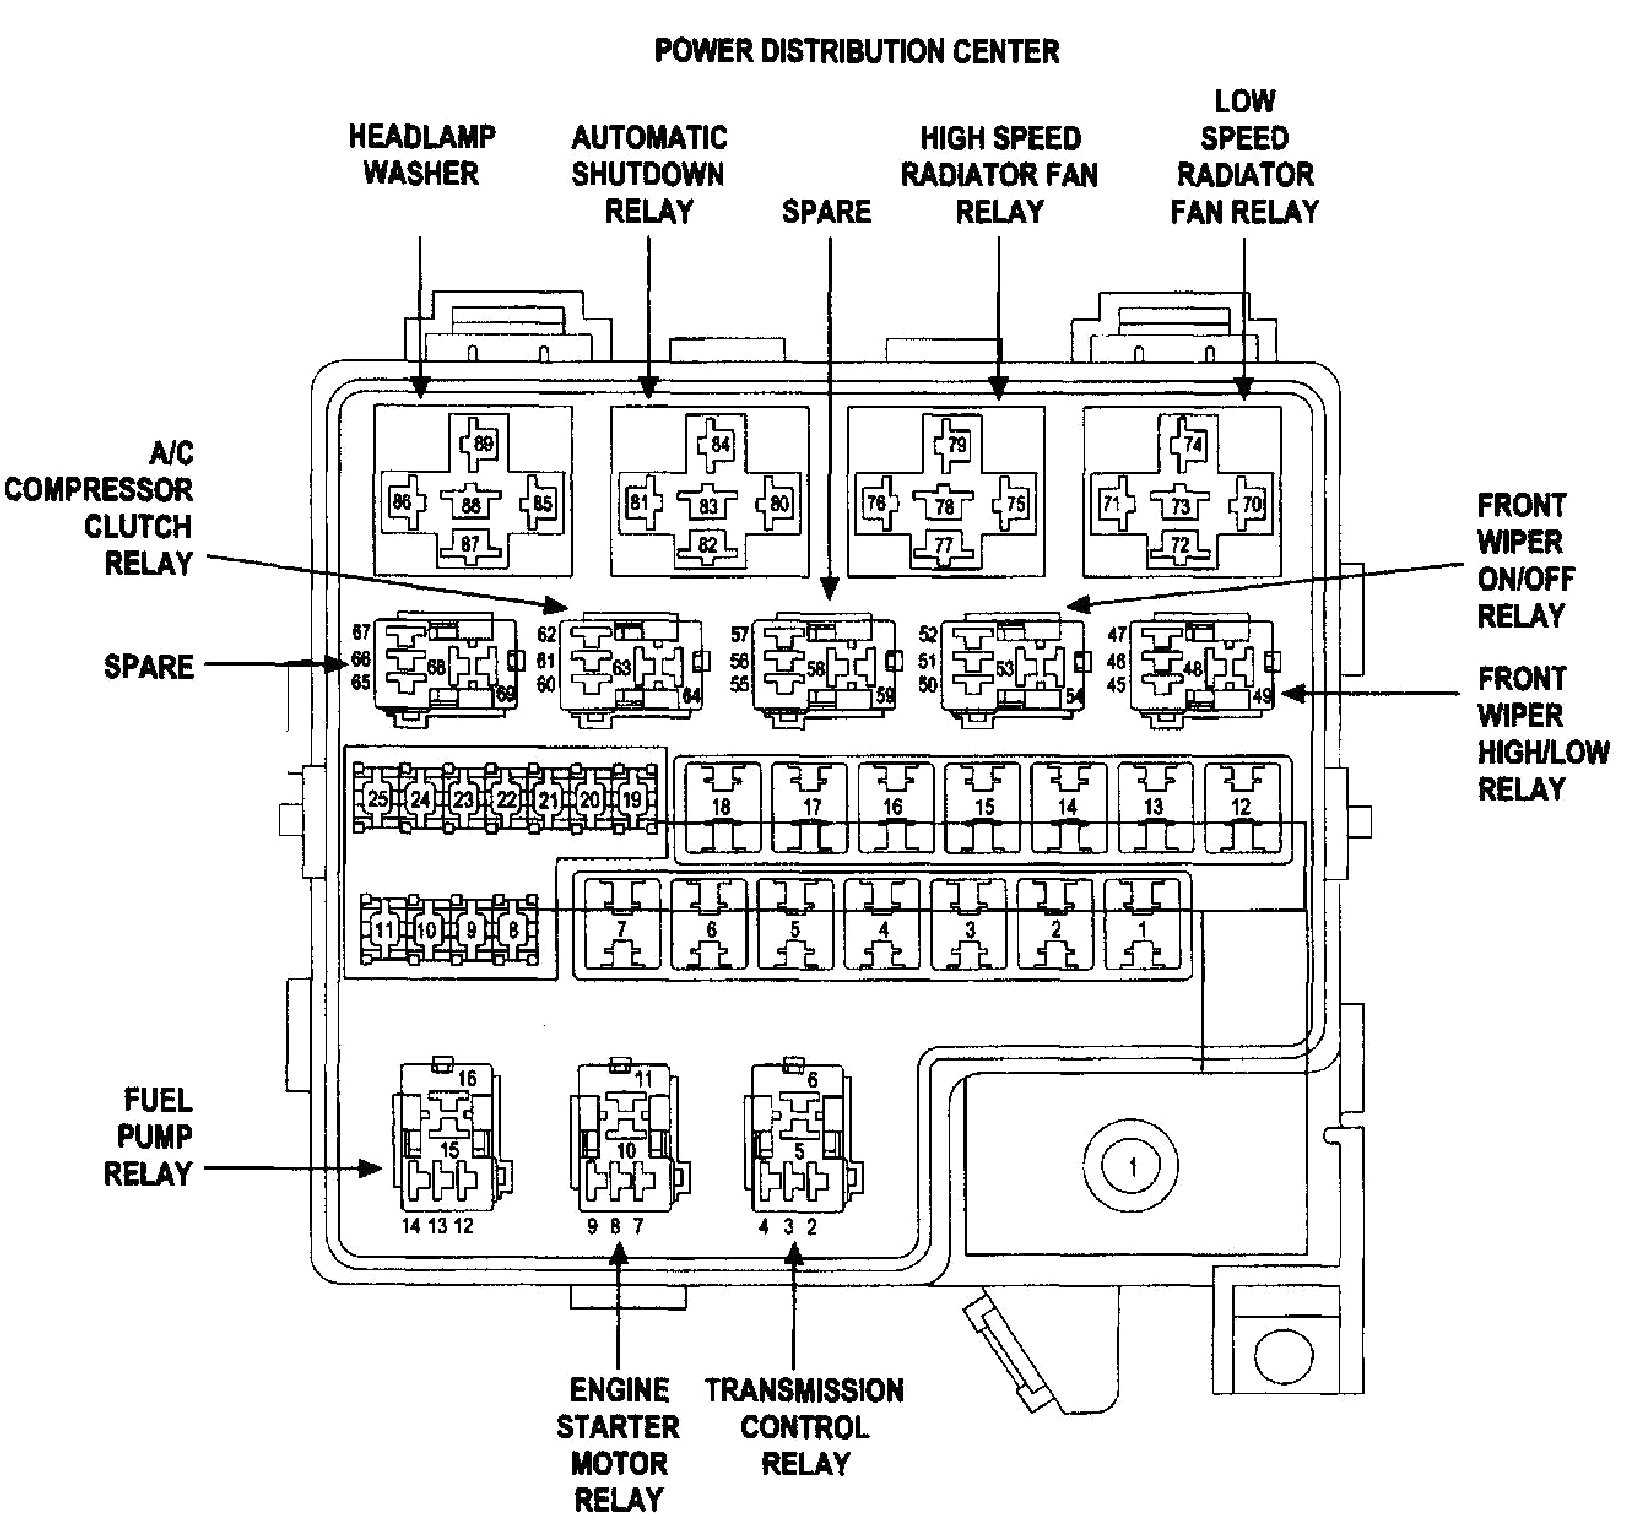 Dodge Stratus Fuse Box Diagram Image Details 2004 Stratus Fuse Diagram 2001 Dodge  Stratus Fuse Box Diagram